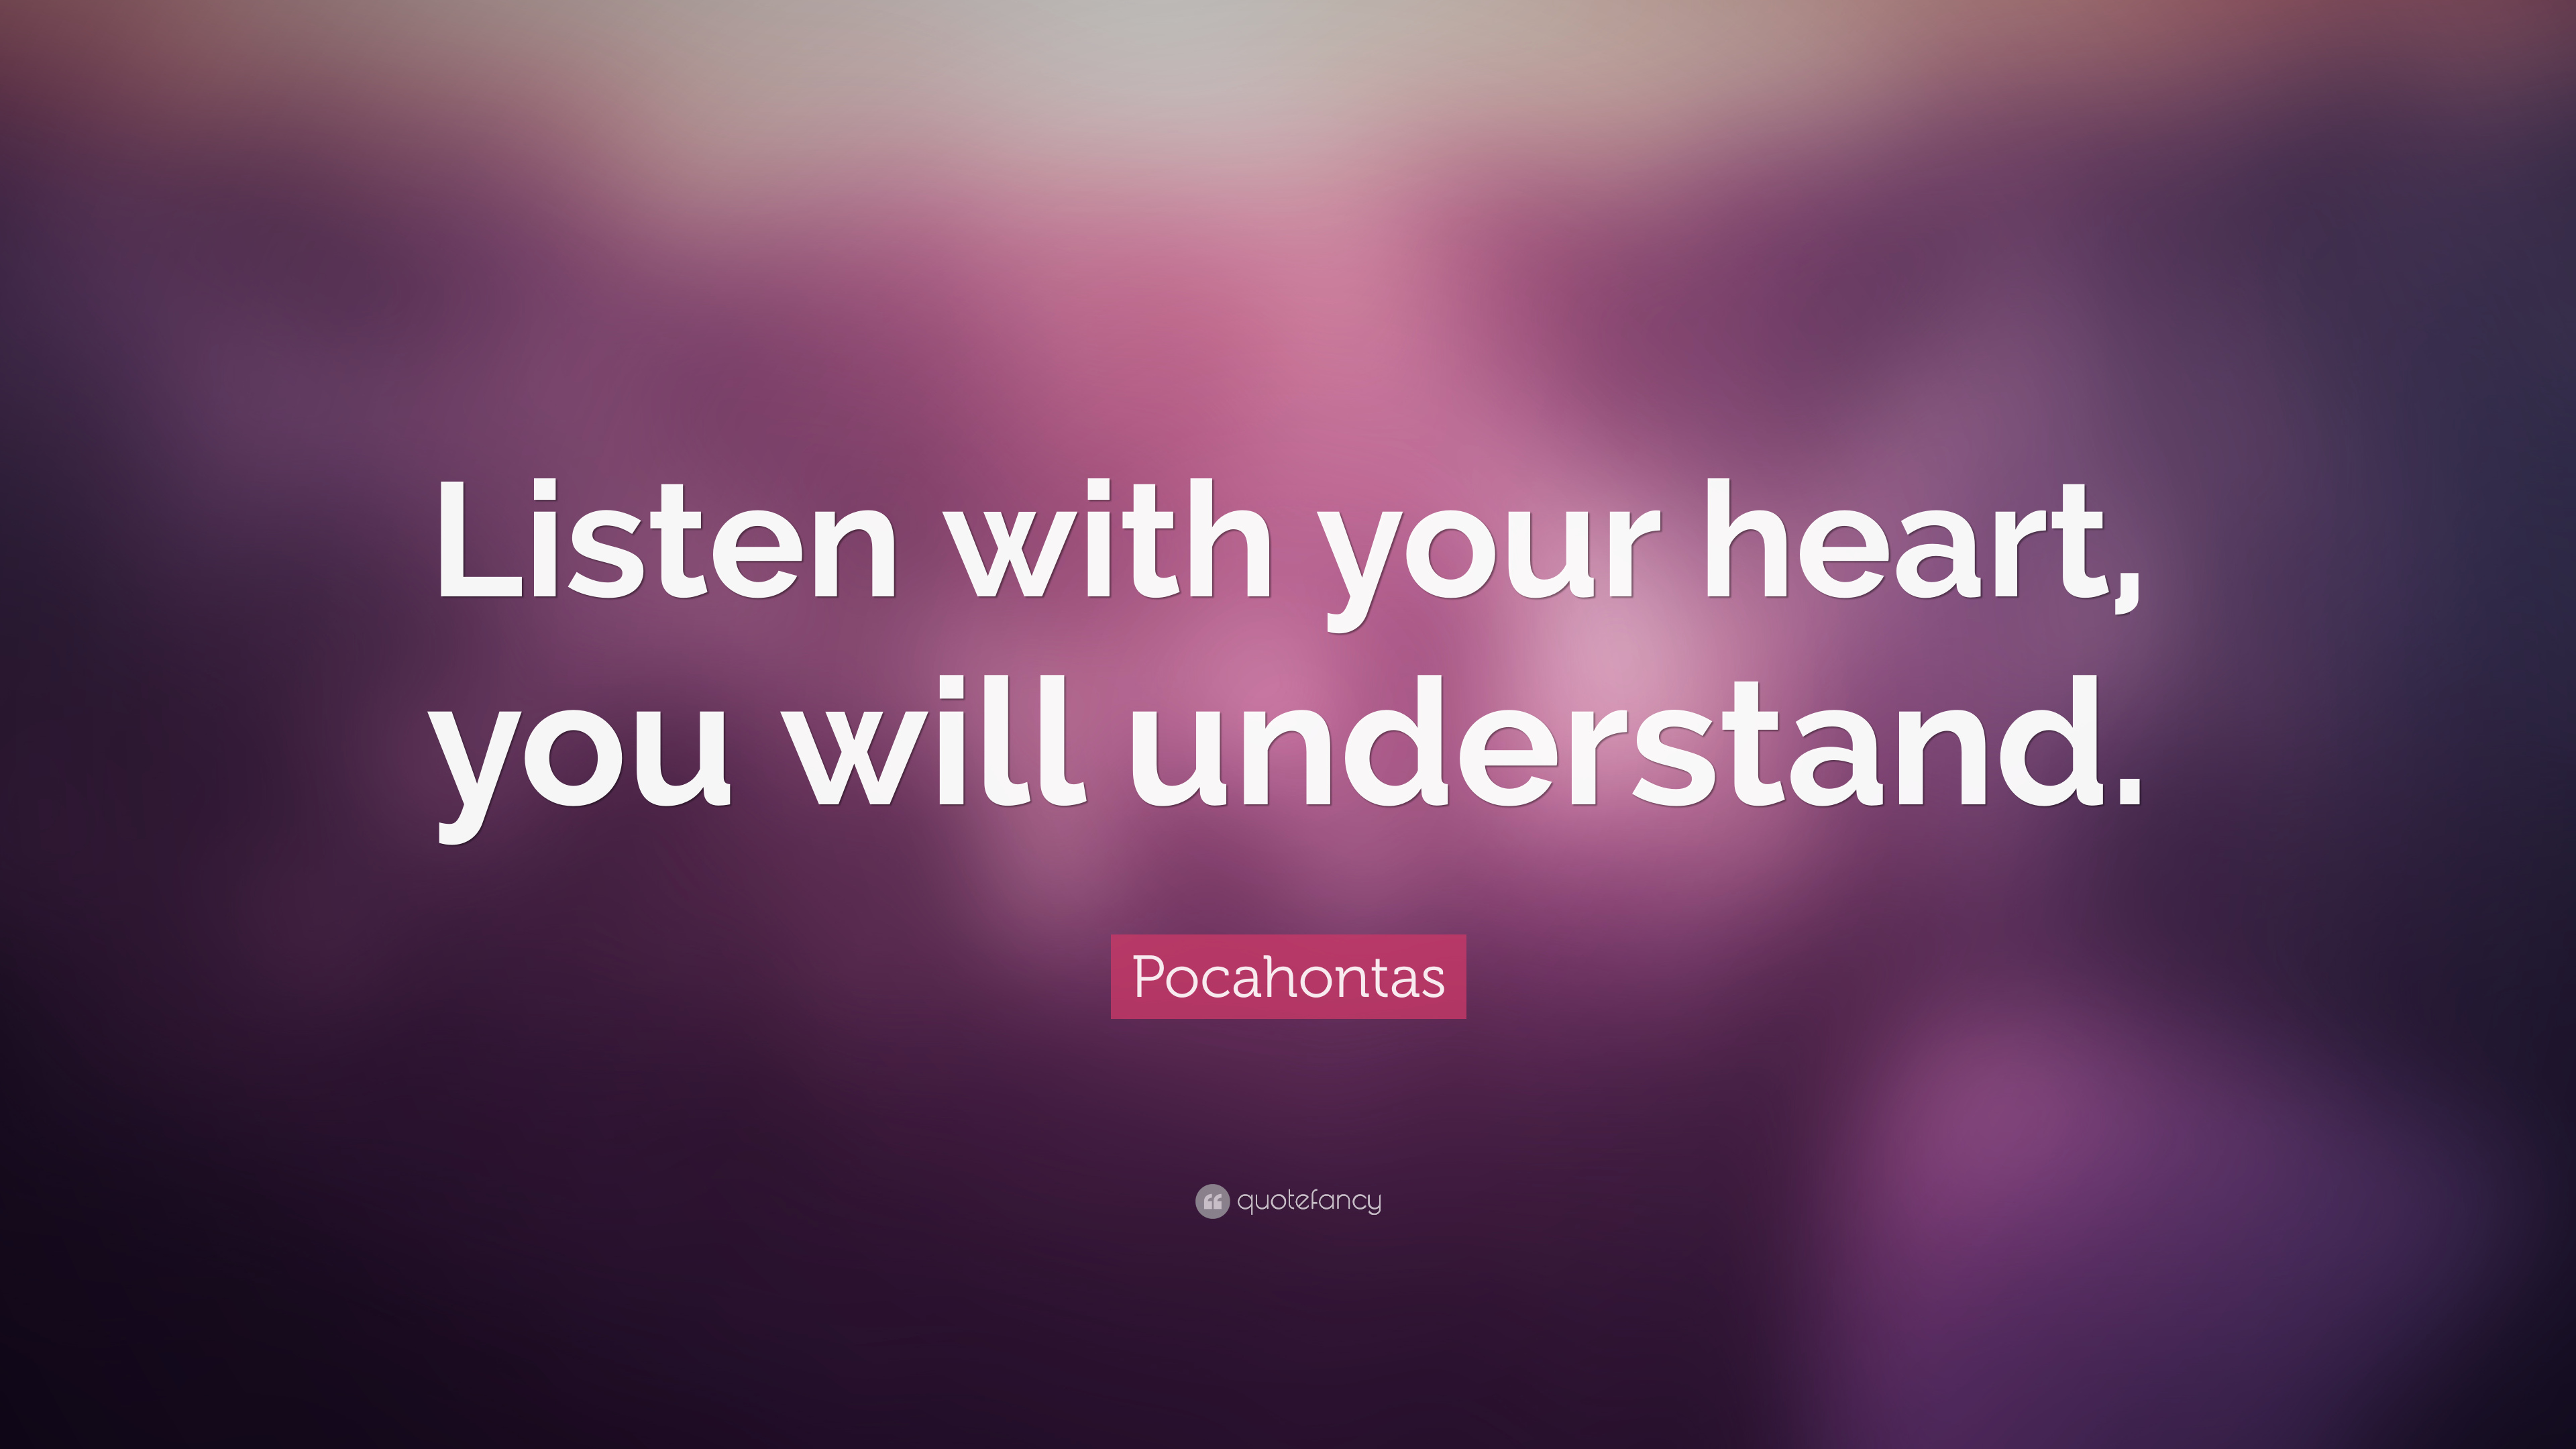 Pocahontas Wallpaper Quotes Pocahontas Quote Listen With Your Heart You Will